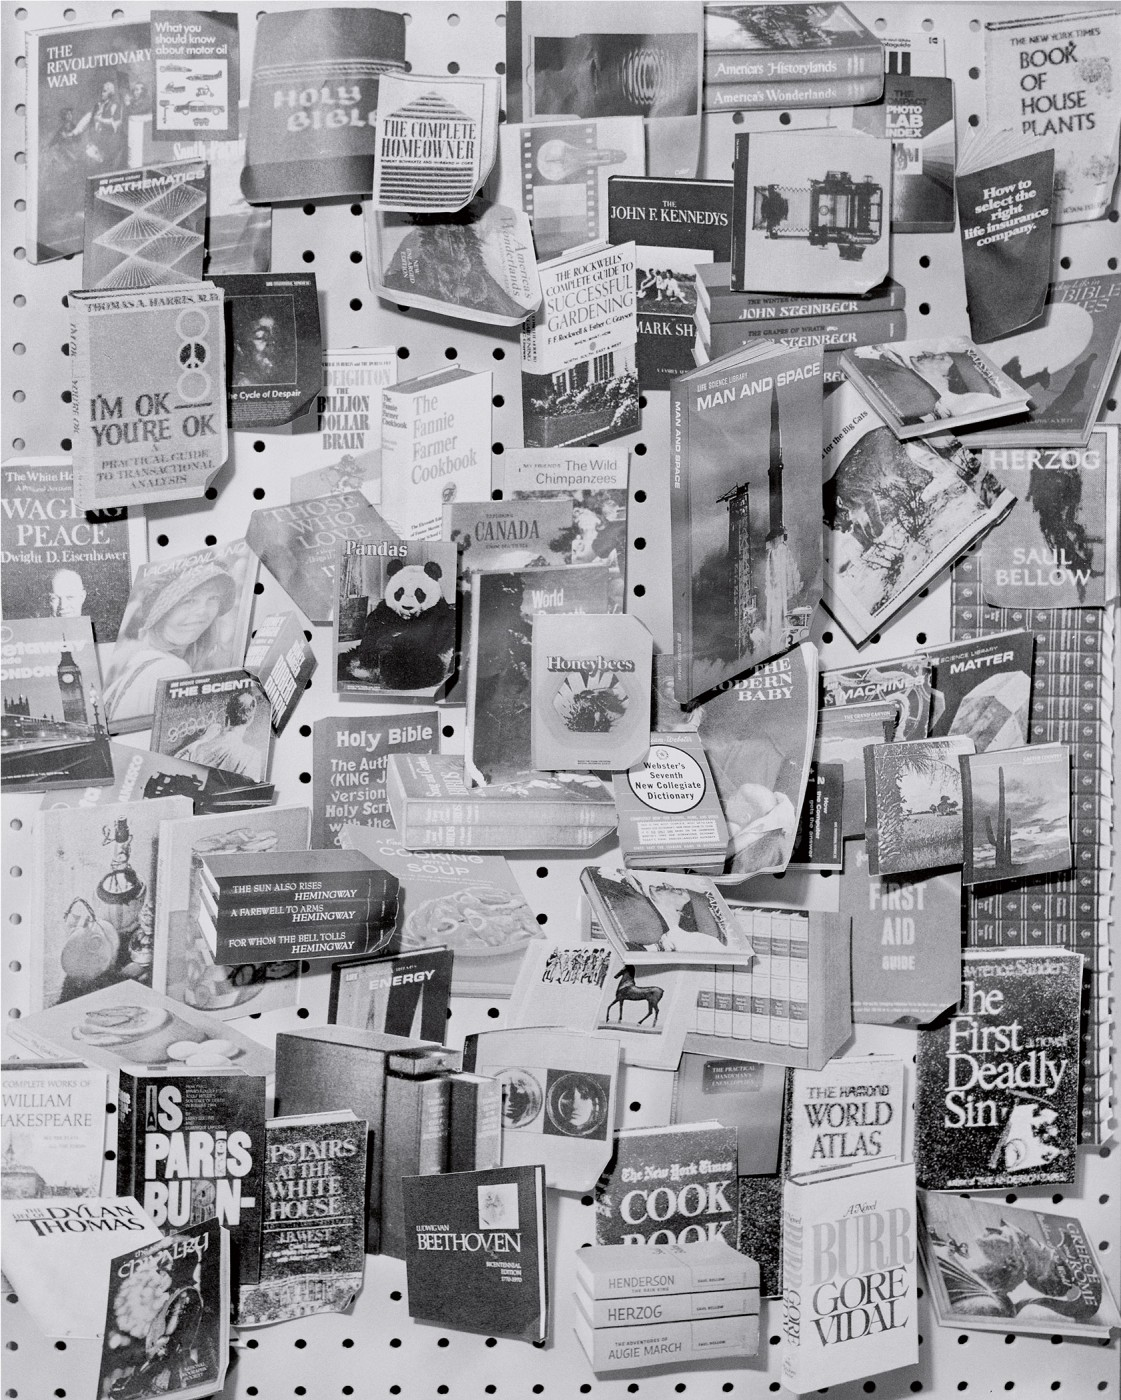 Sara Cwynar, </span><span><em>Man and Space (Books 2)</em>, </span><span>2013 Courtesy of the artist and Cooper Cole Gallery